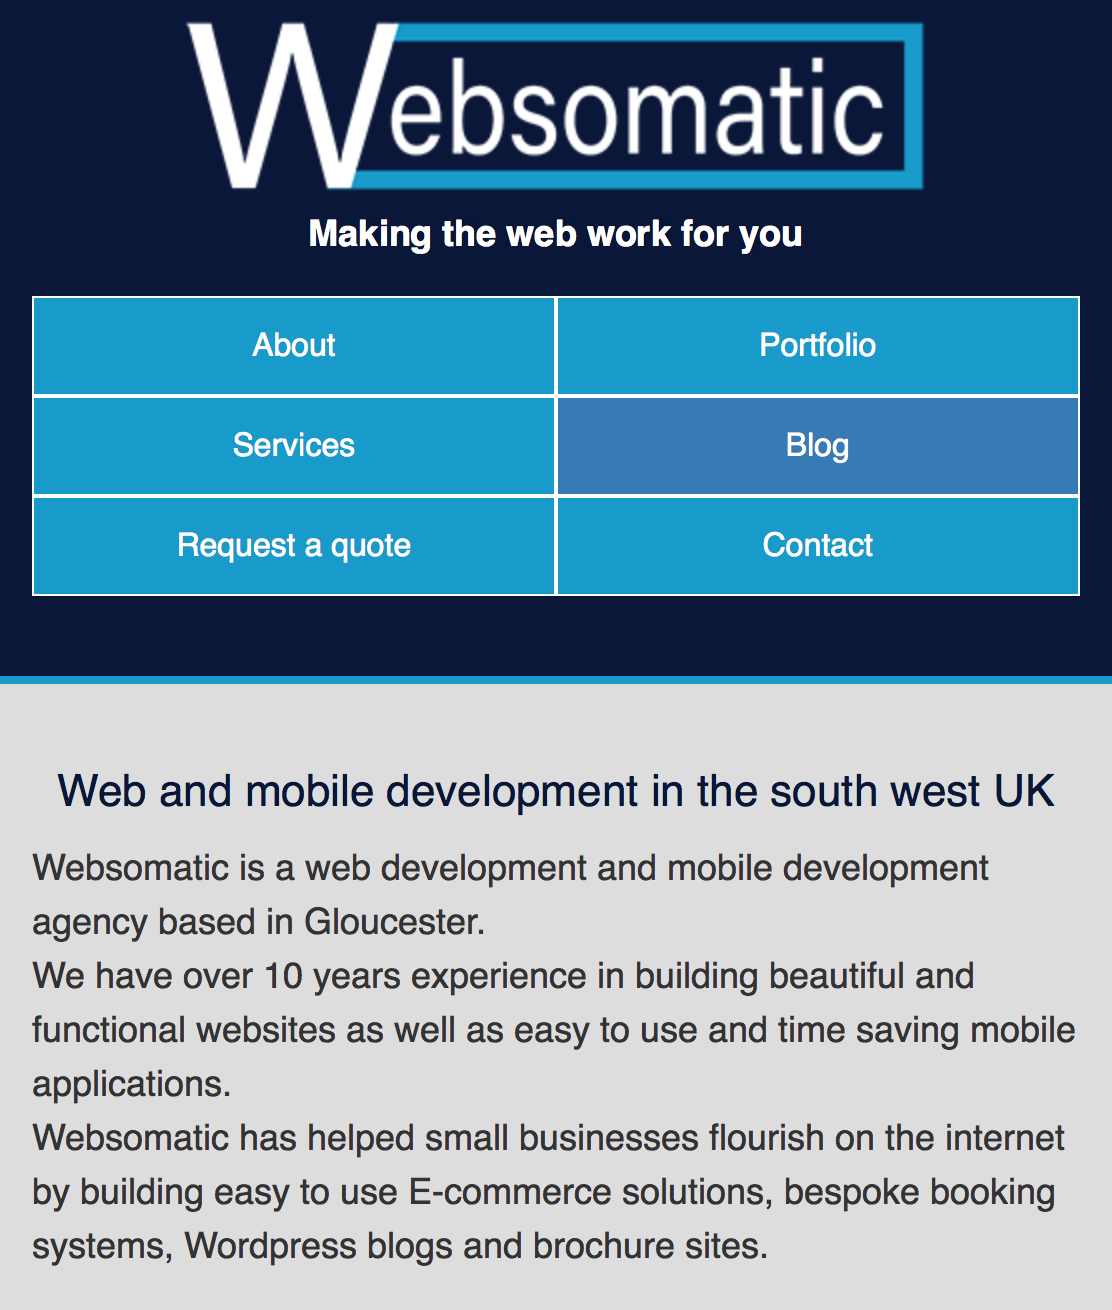 Websomatic has a responsive and mobile friendlywebsite